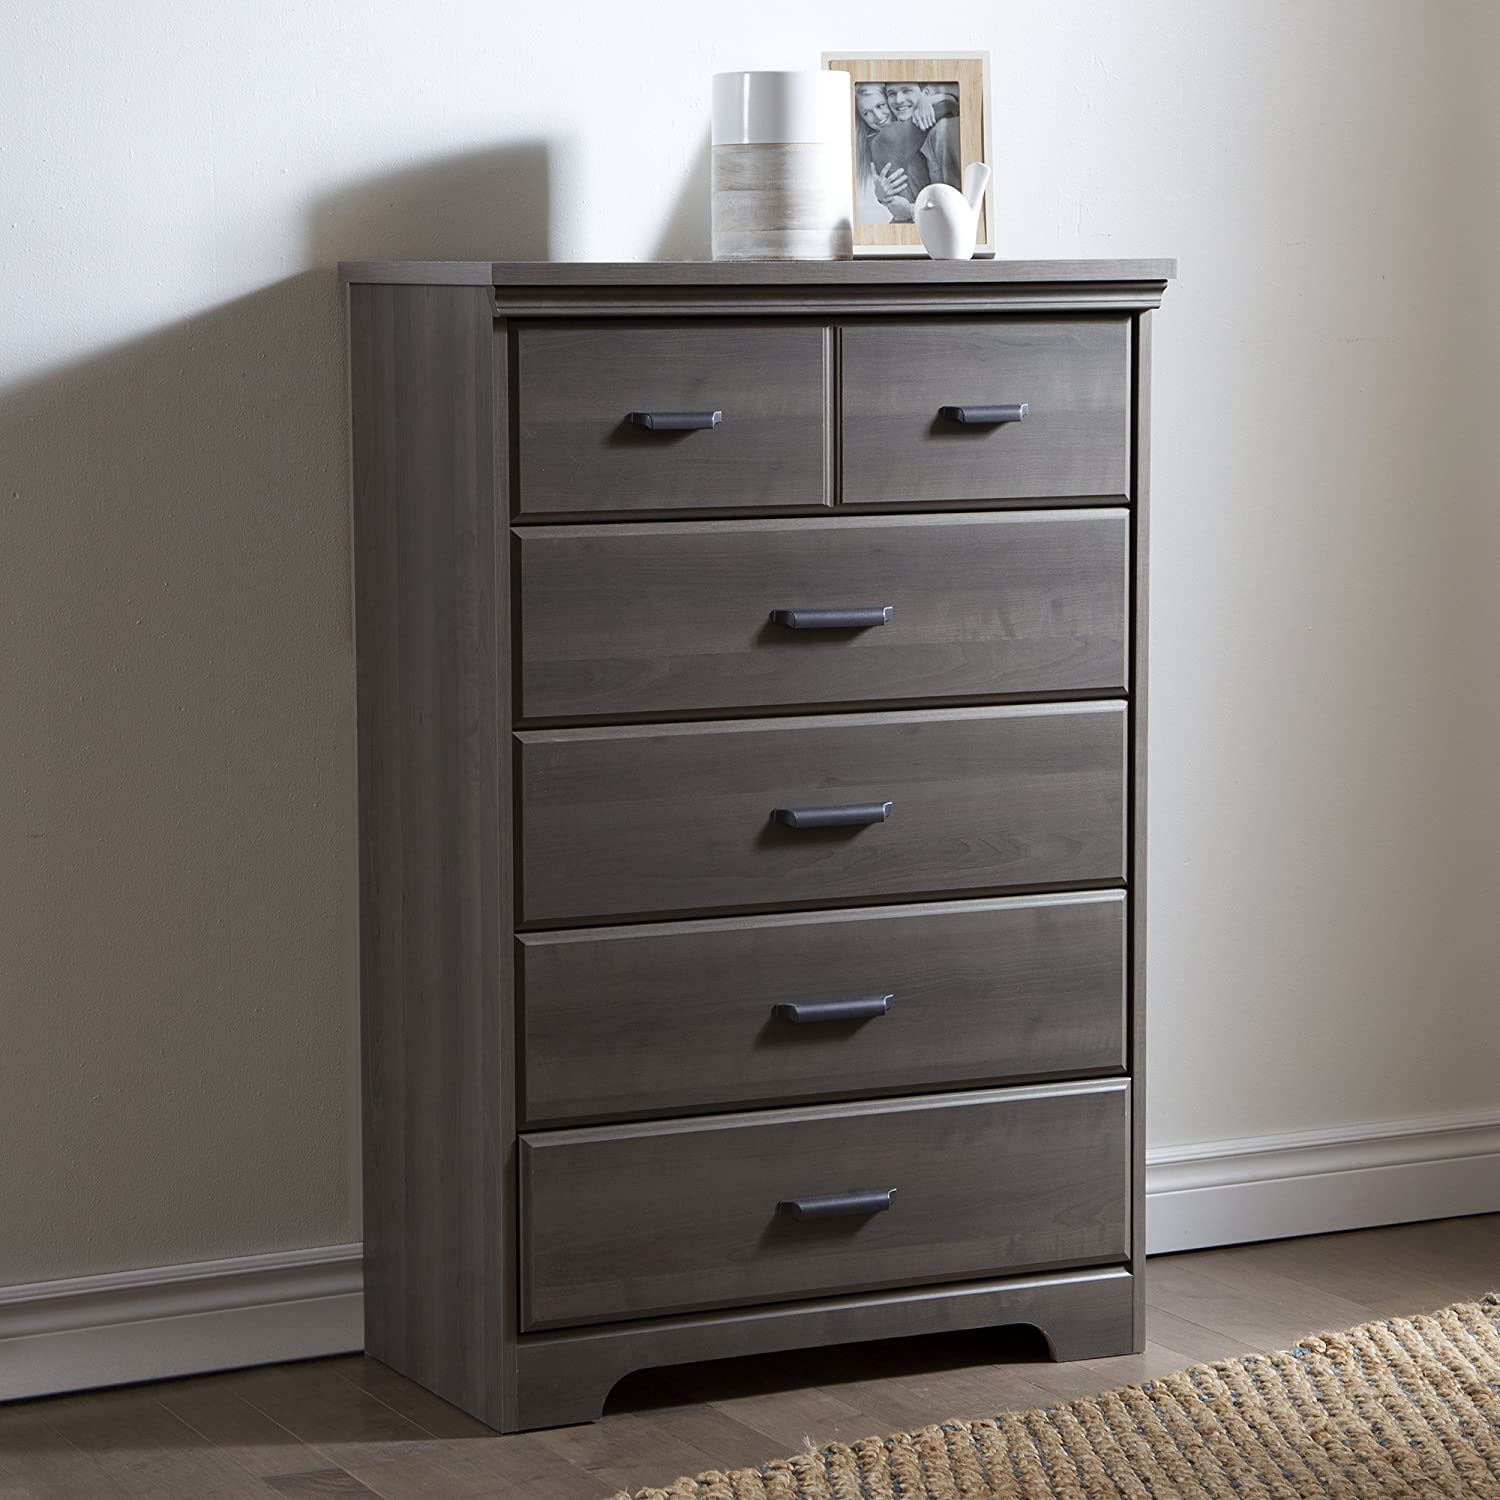 amazonca dressers  chests of drawers home  kitchen - south shore furniture versa drawer chest gray maple